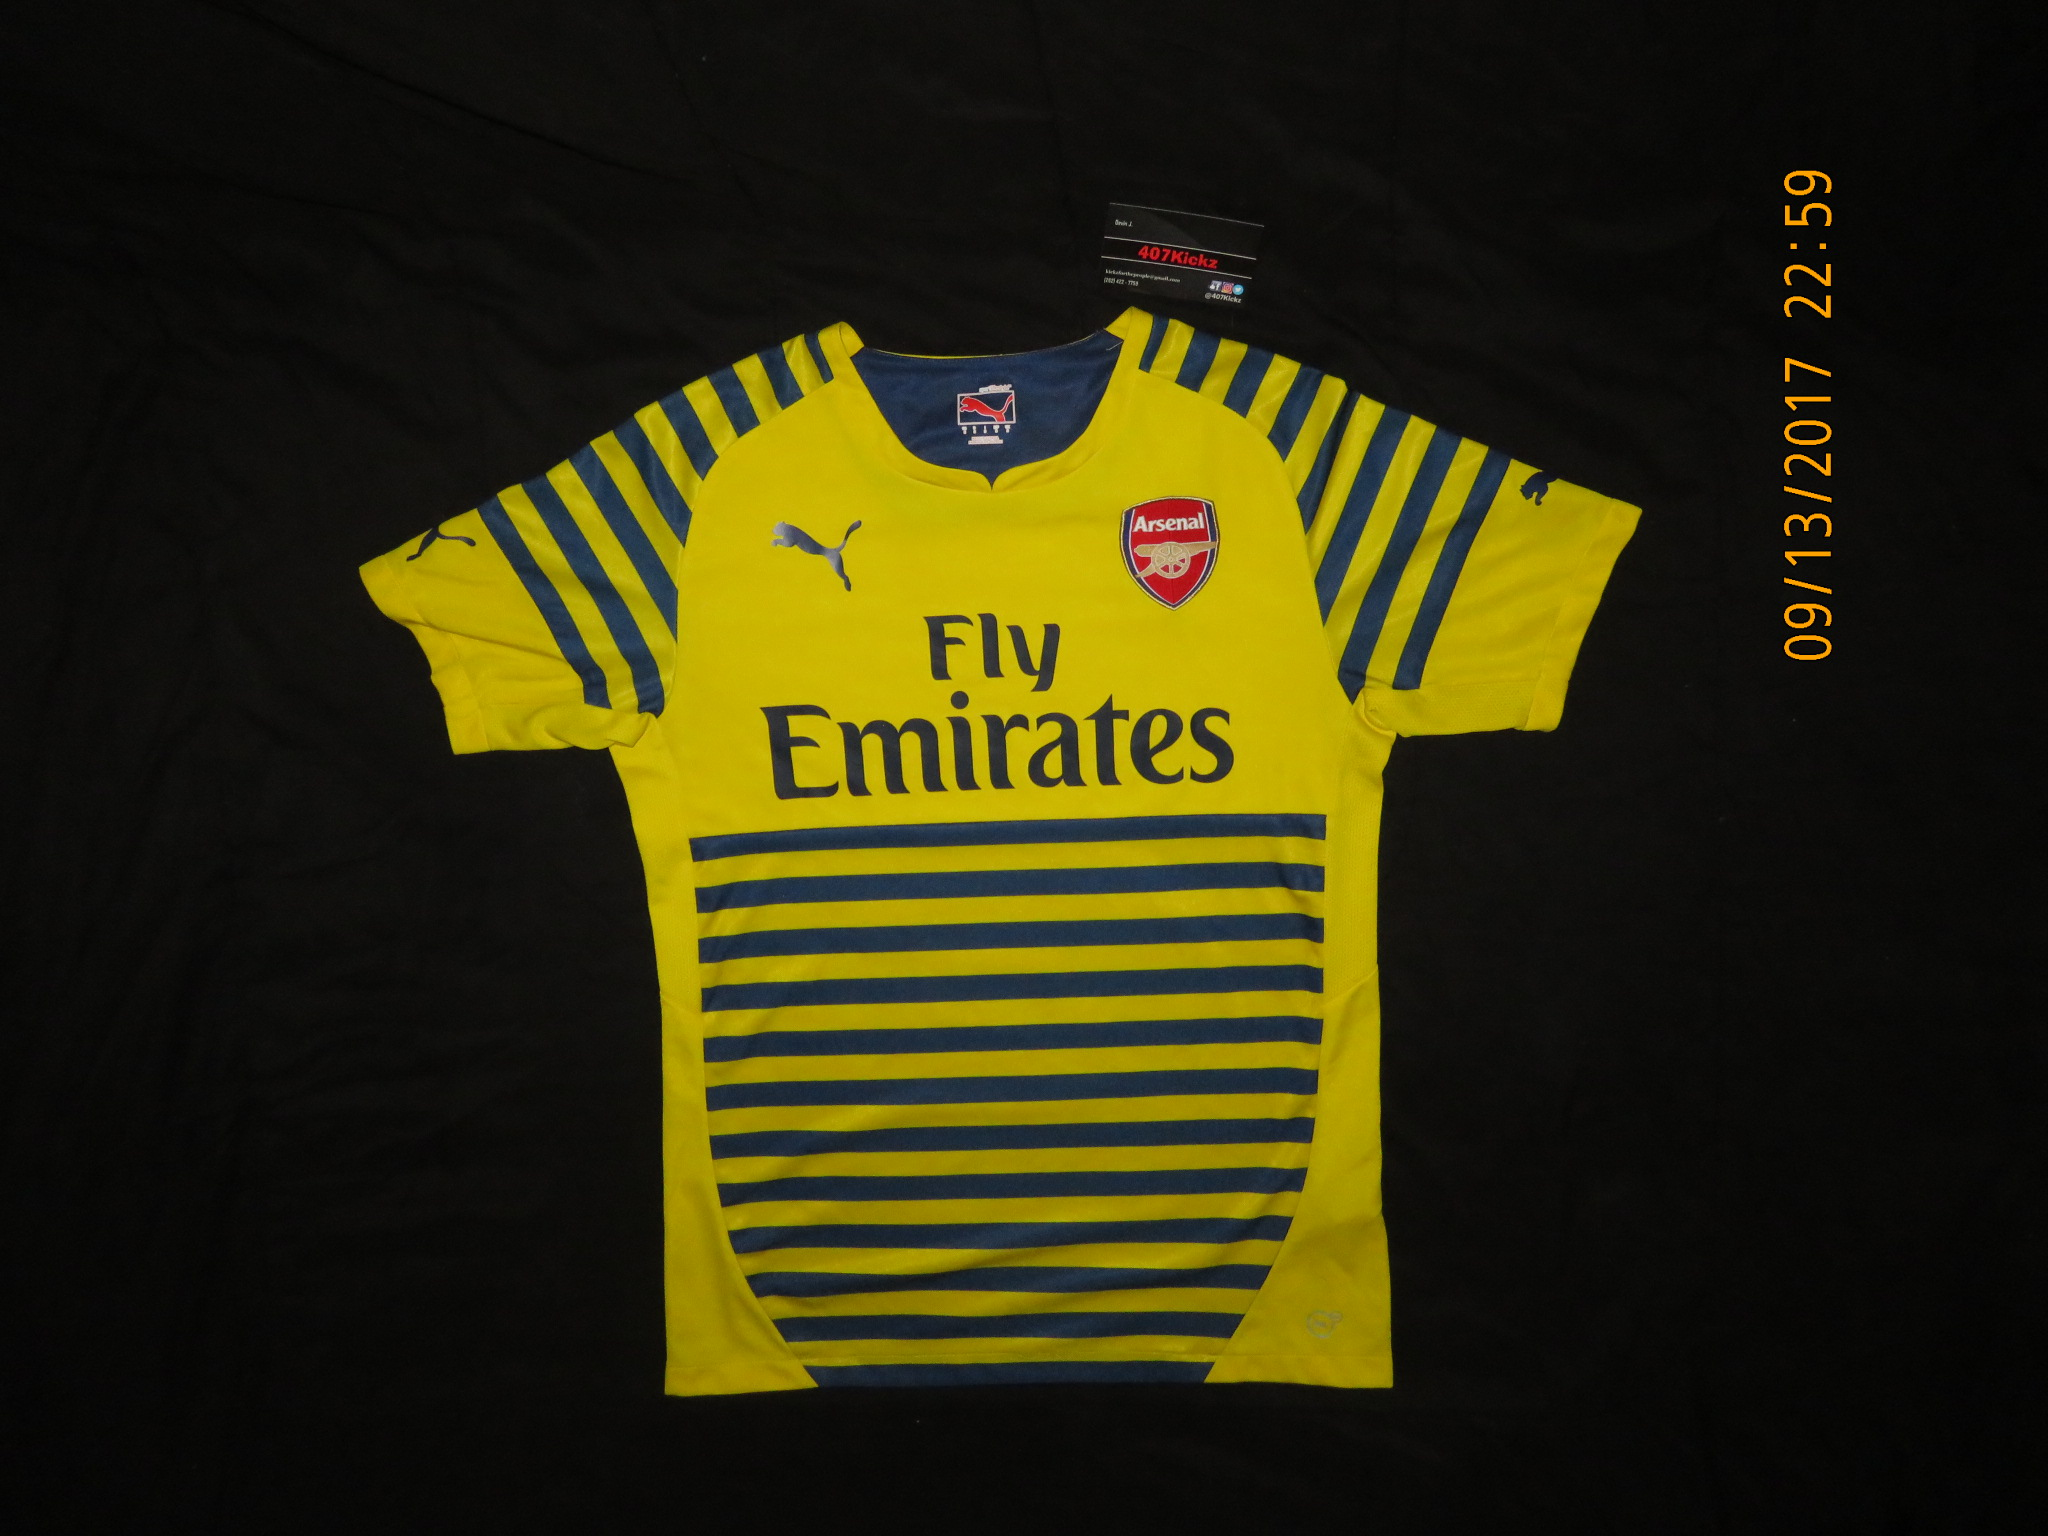 6855efdf13231 Puma Arsenal Fly Emirates Yellow Striped Soccer Jersey Size s - Jerseys for  Sale - Grailed